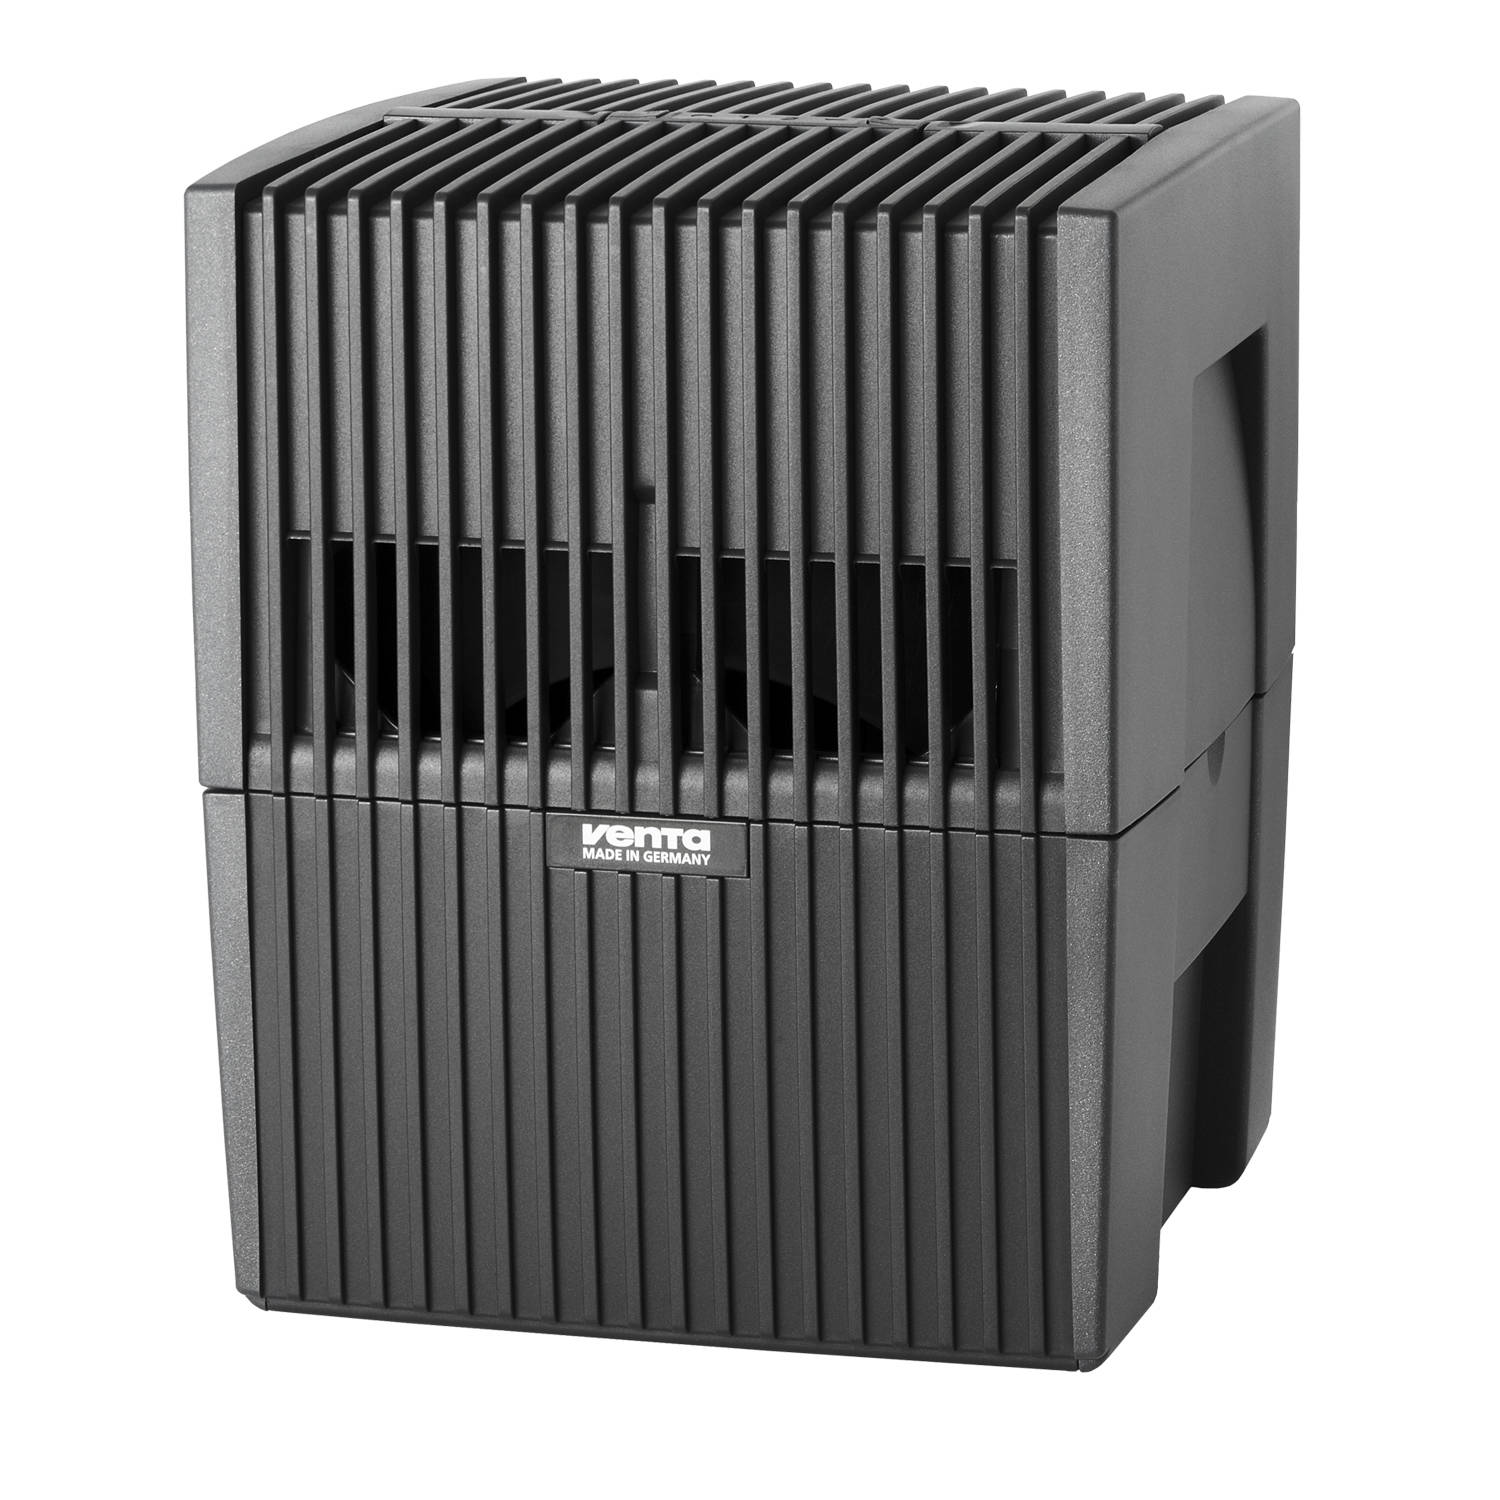 LW45 2 in 1 Evaporative Humidifier   Air Purifier for Life 800 Sq. Ft  #646667